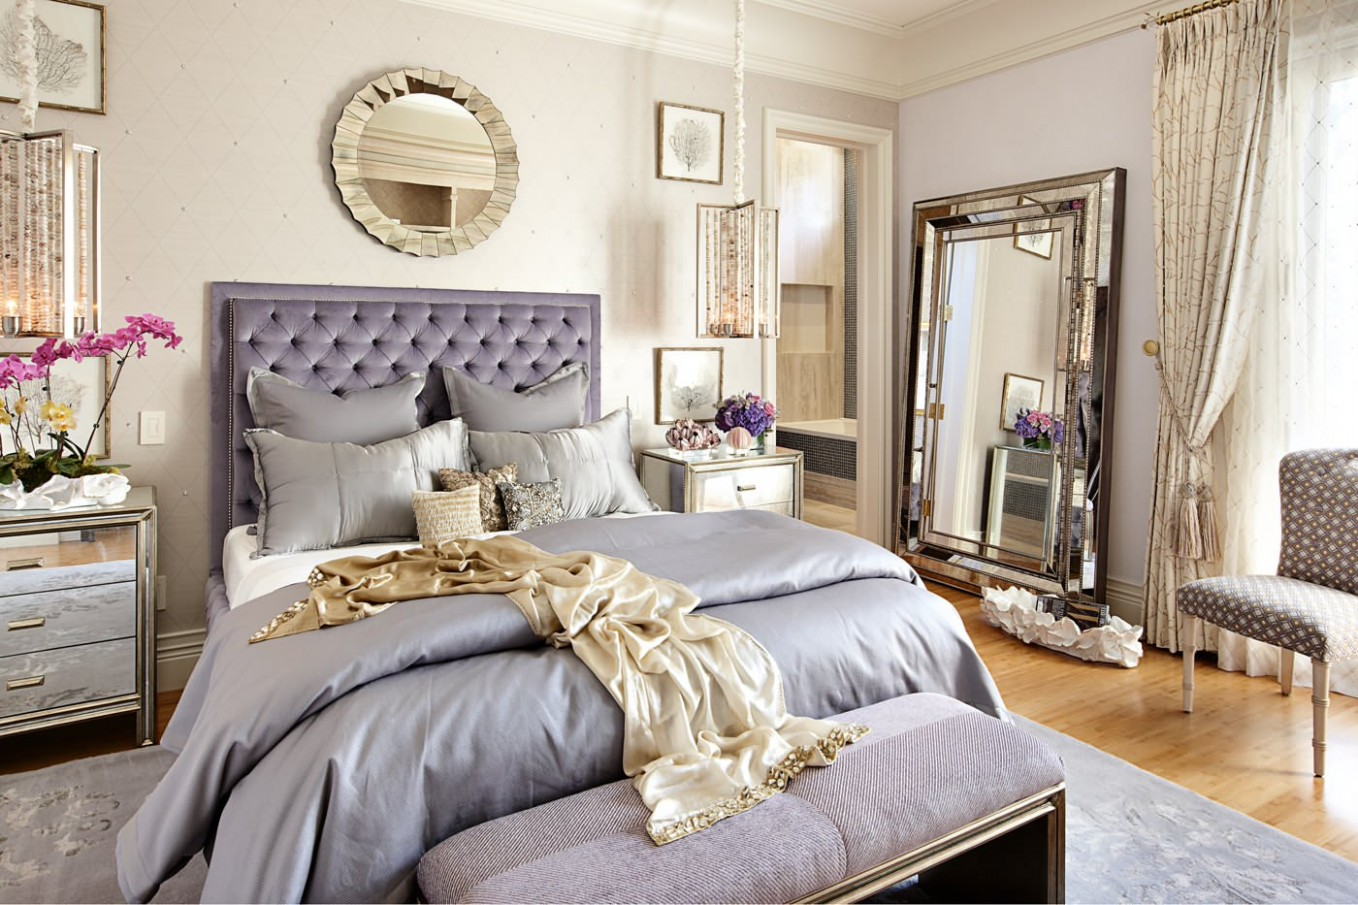 8 Steps To A Girly Adult Bedroom – Shop Room Ideas - Bedroom Ideas Adults